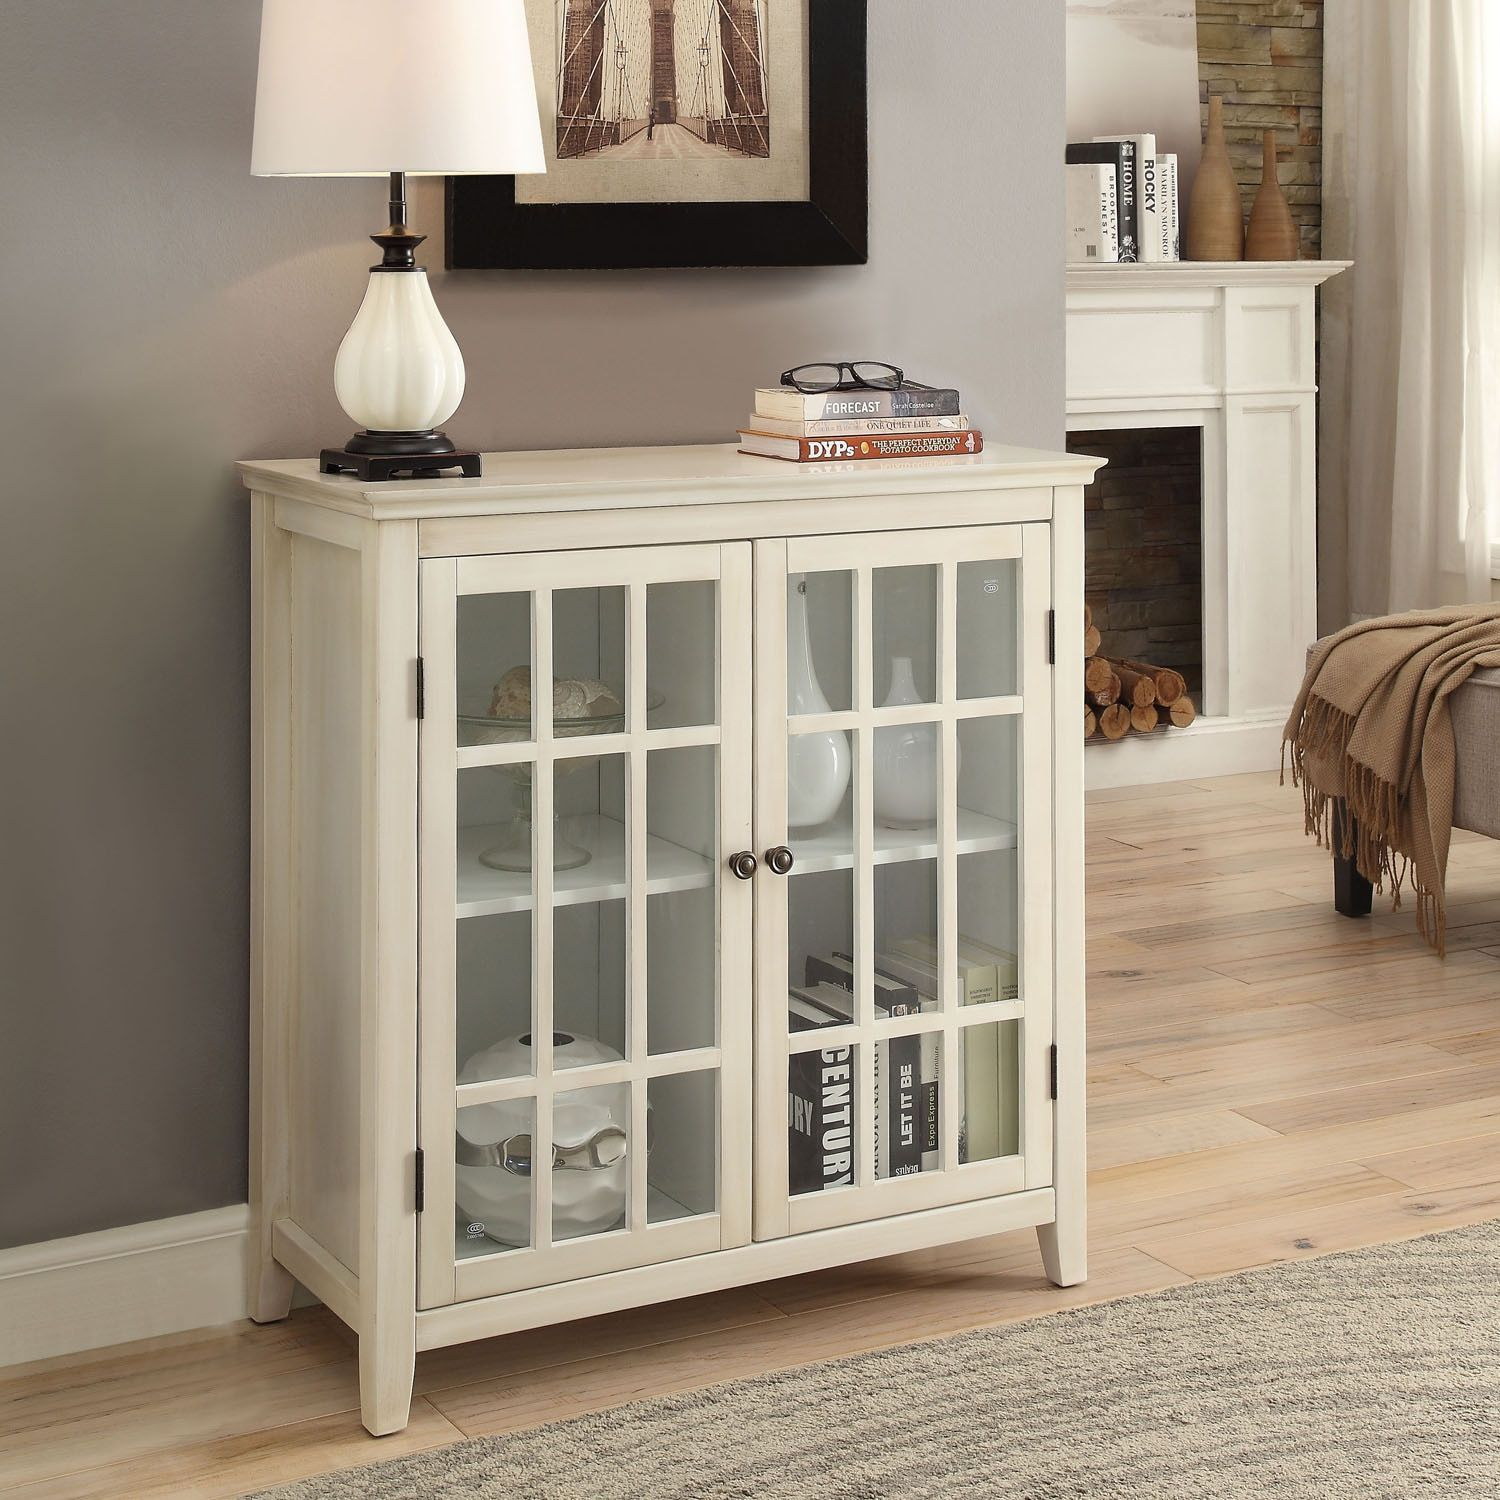 linon galway cabinet white glass doors accent table navy end christmas tablecloth and runner rattan nightstand tables bar stools nautical track lighting chestnut style lamps